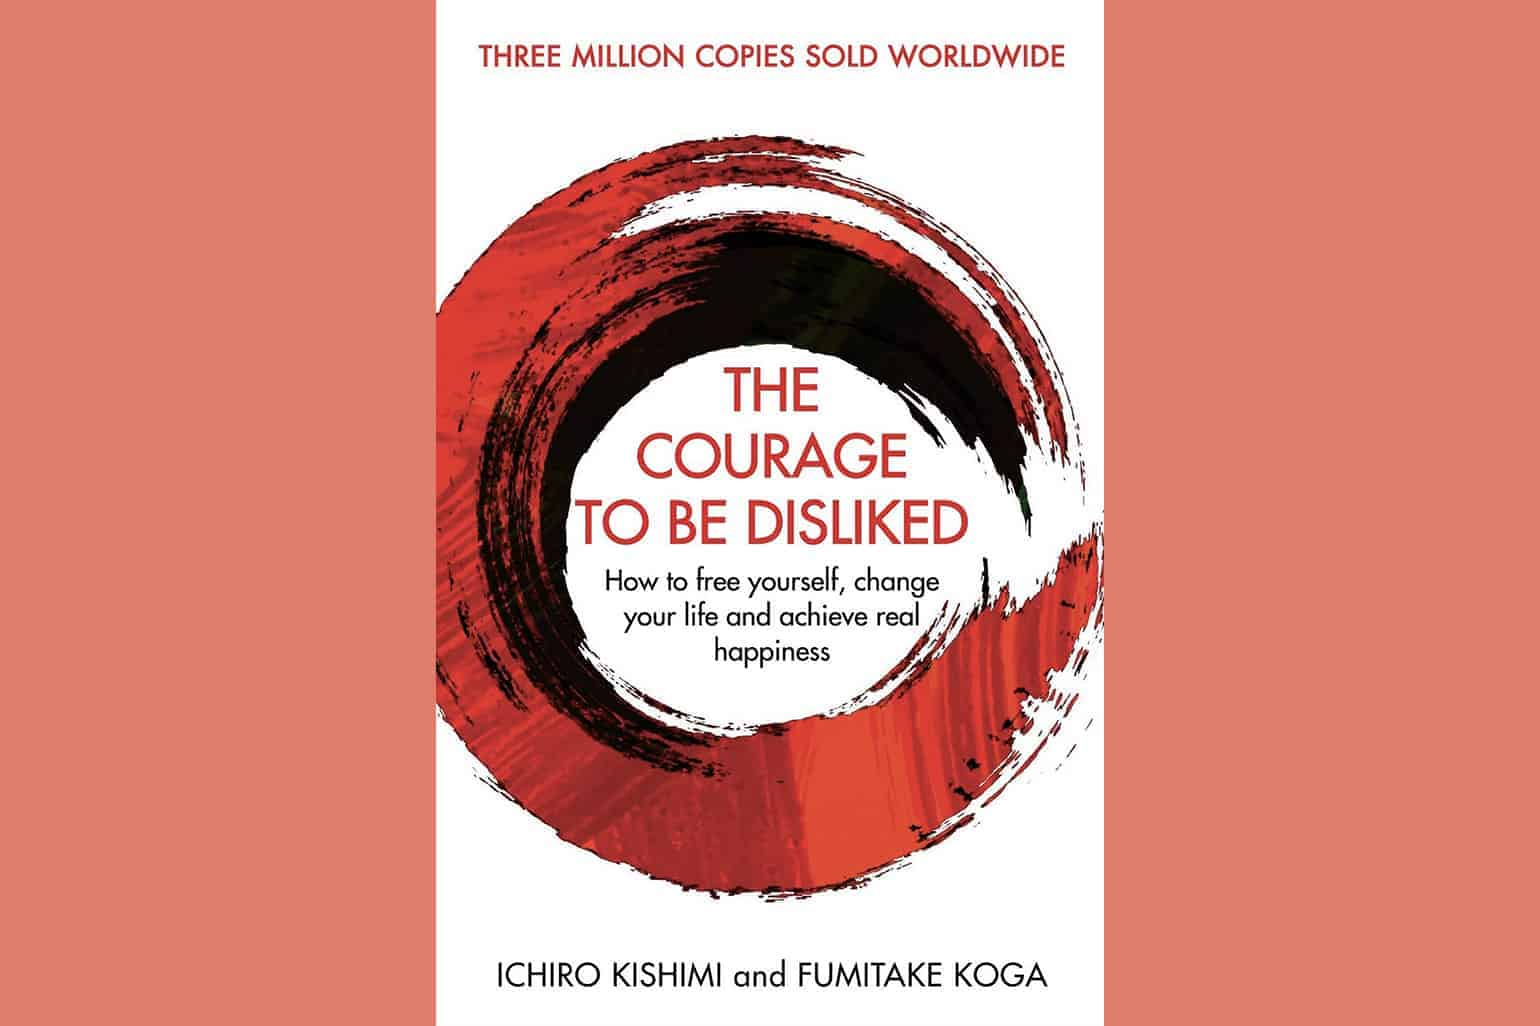 The Courage To Be Disliked How To Free Yourself Change Your Life And Achieve Real Happiness By Ichiro Kishimi And Fumitake Koga